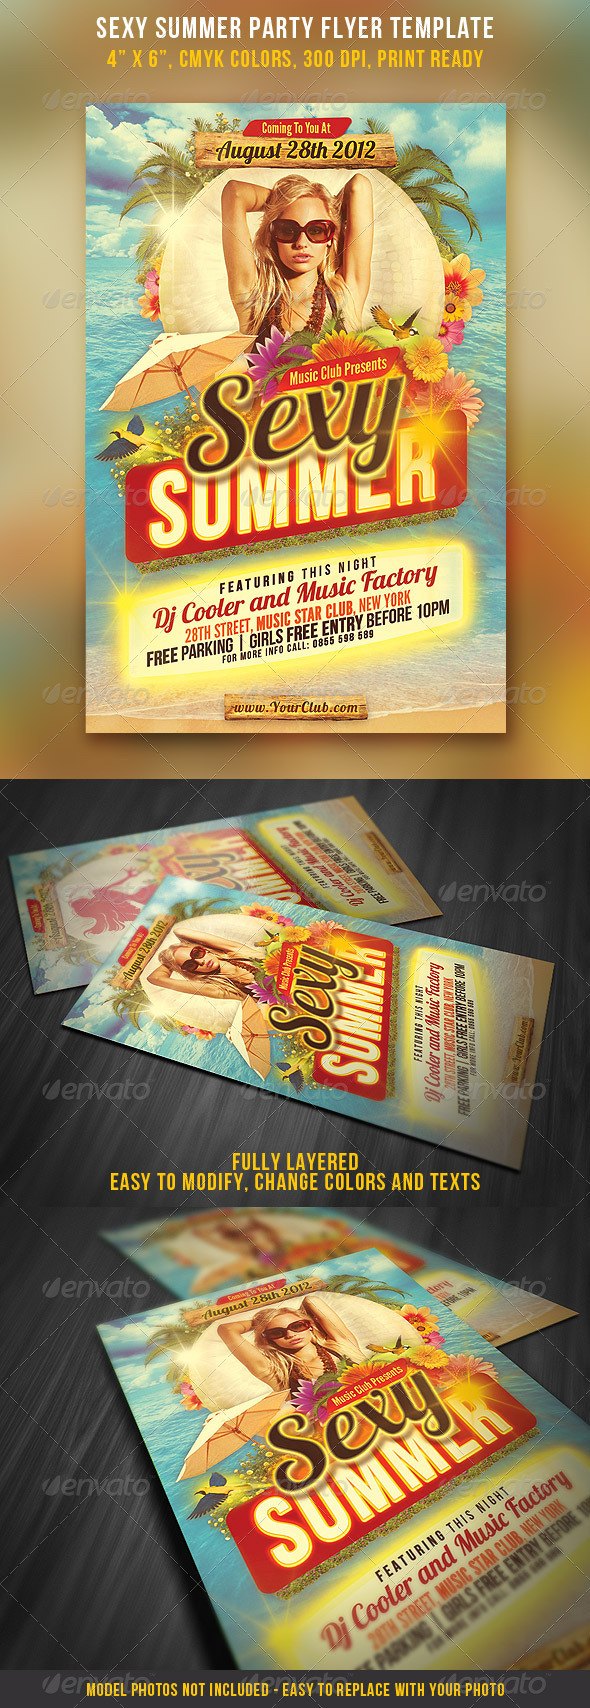 Sexy Summer Party Flyer Template - Clubs & Parties Events